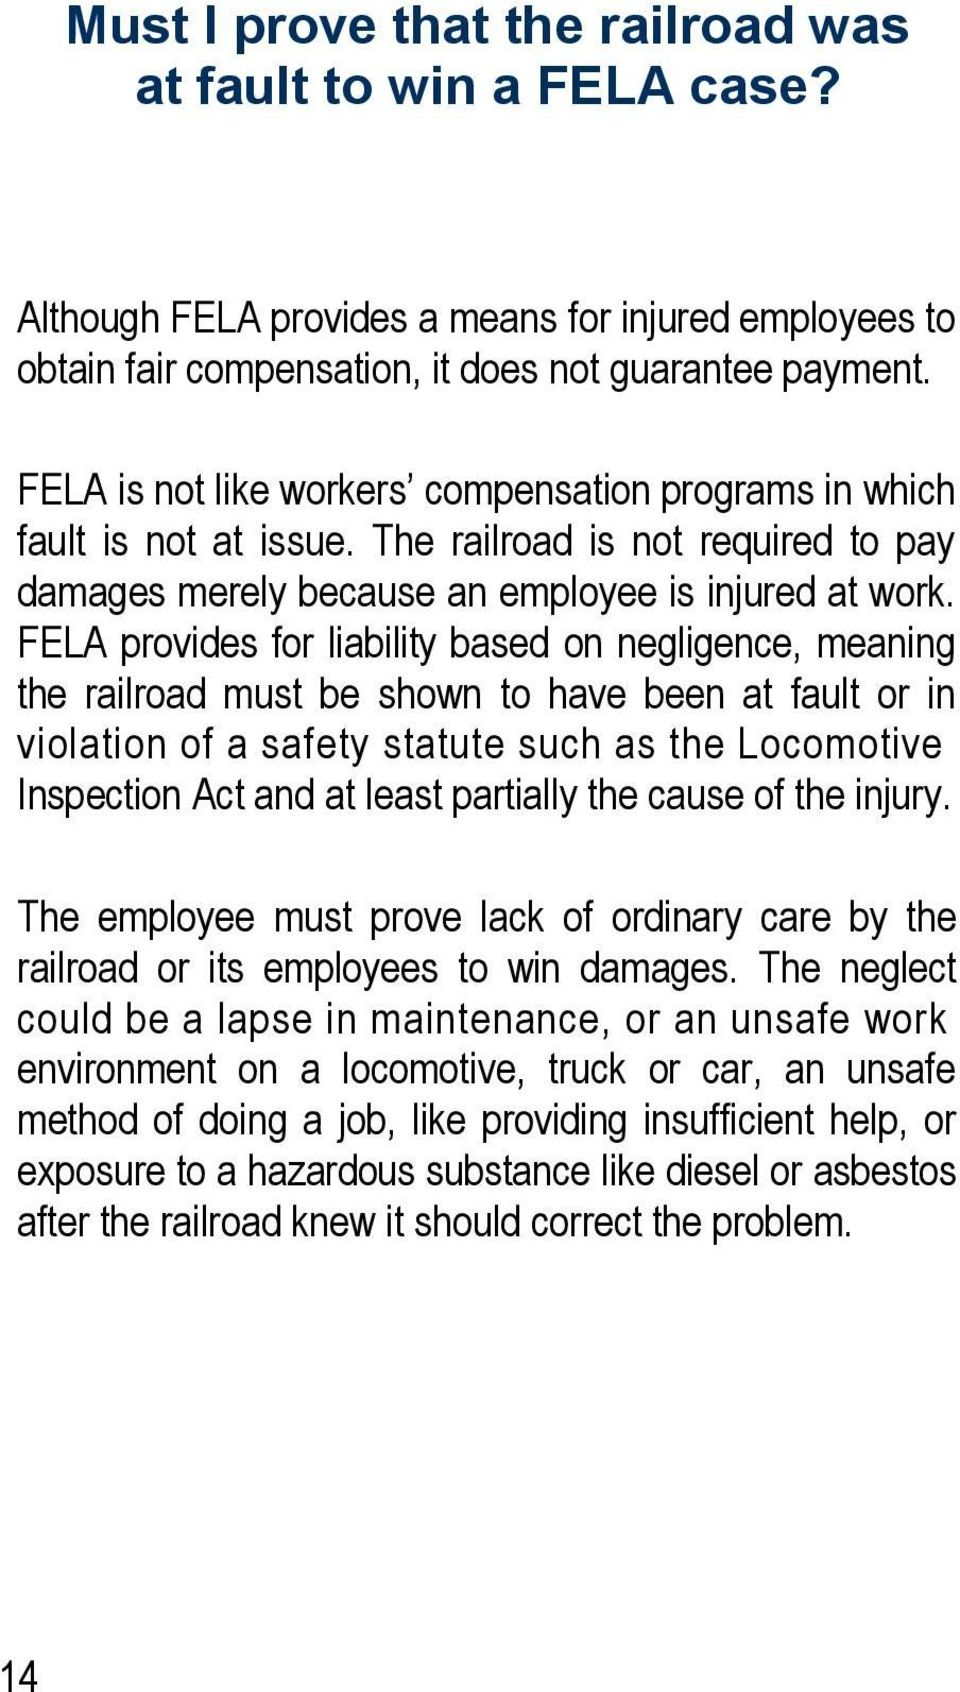 FELA provides for liability based on negligence, meaning the railroad must be shown to have been at fault or in violation of a safety statute such as the Locomotive Inspection Act and at least